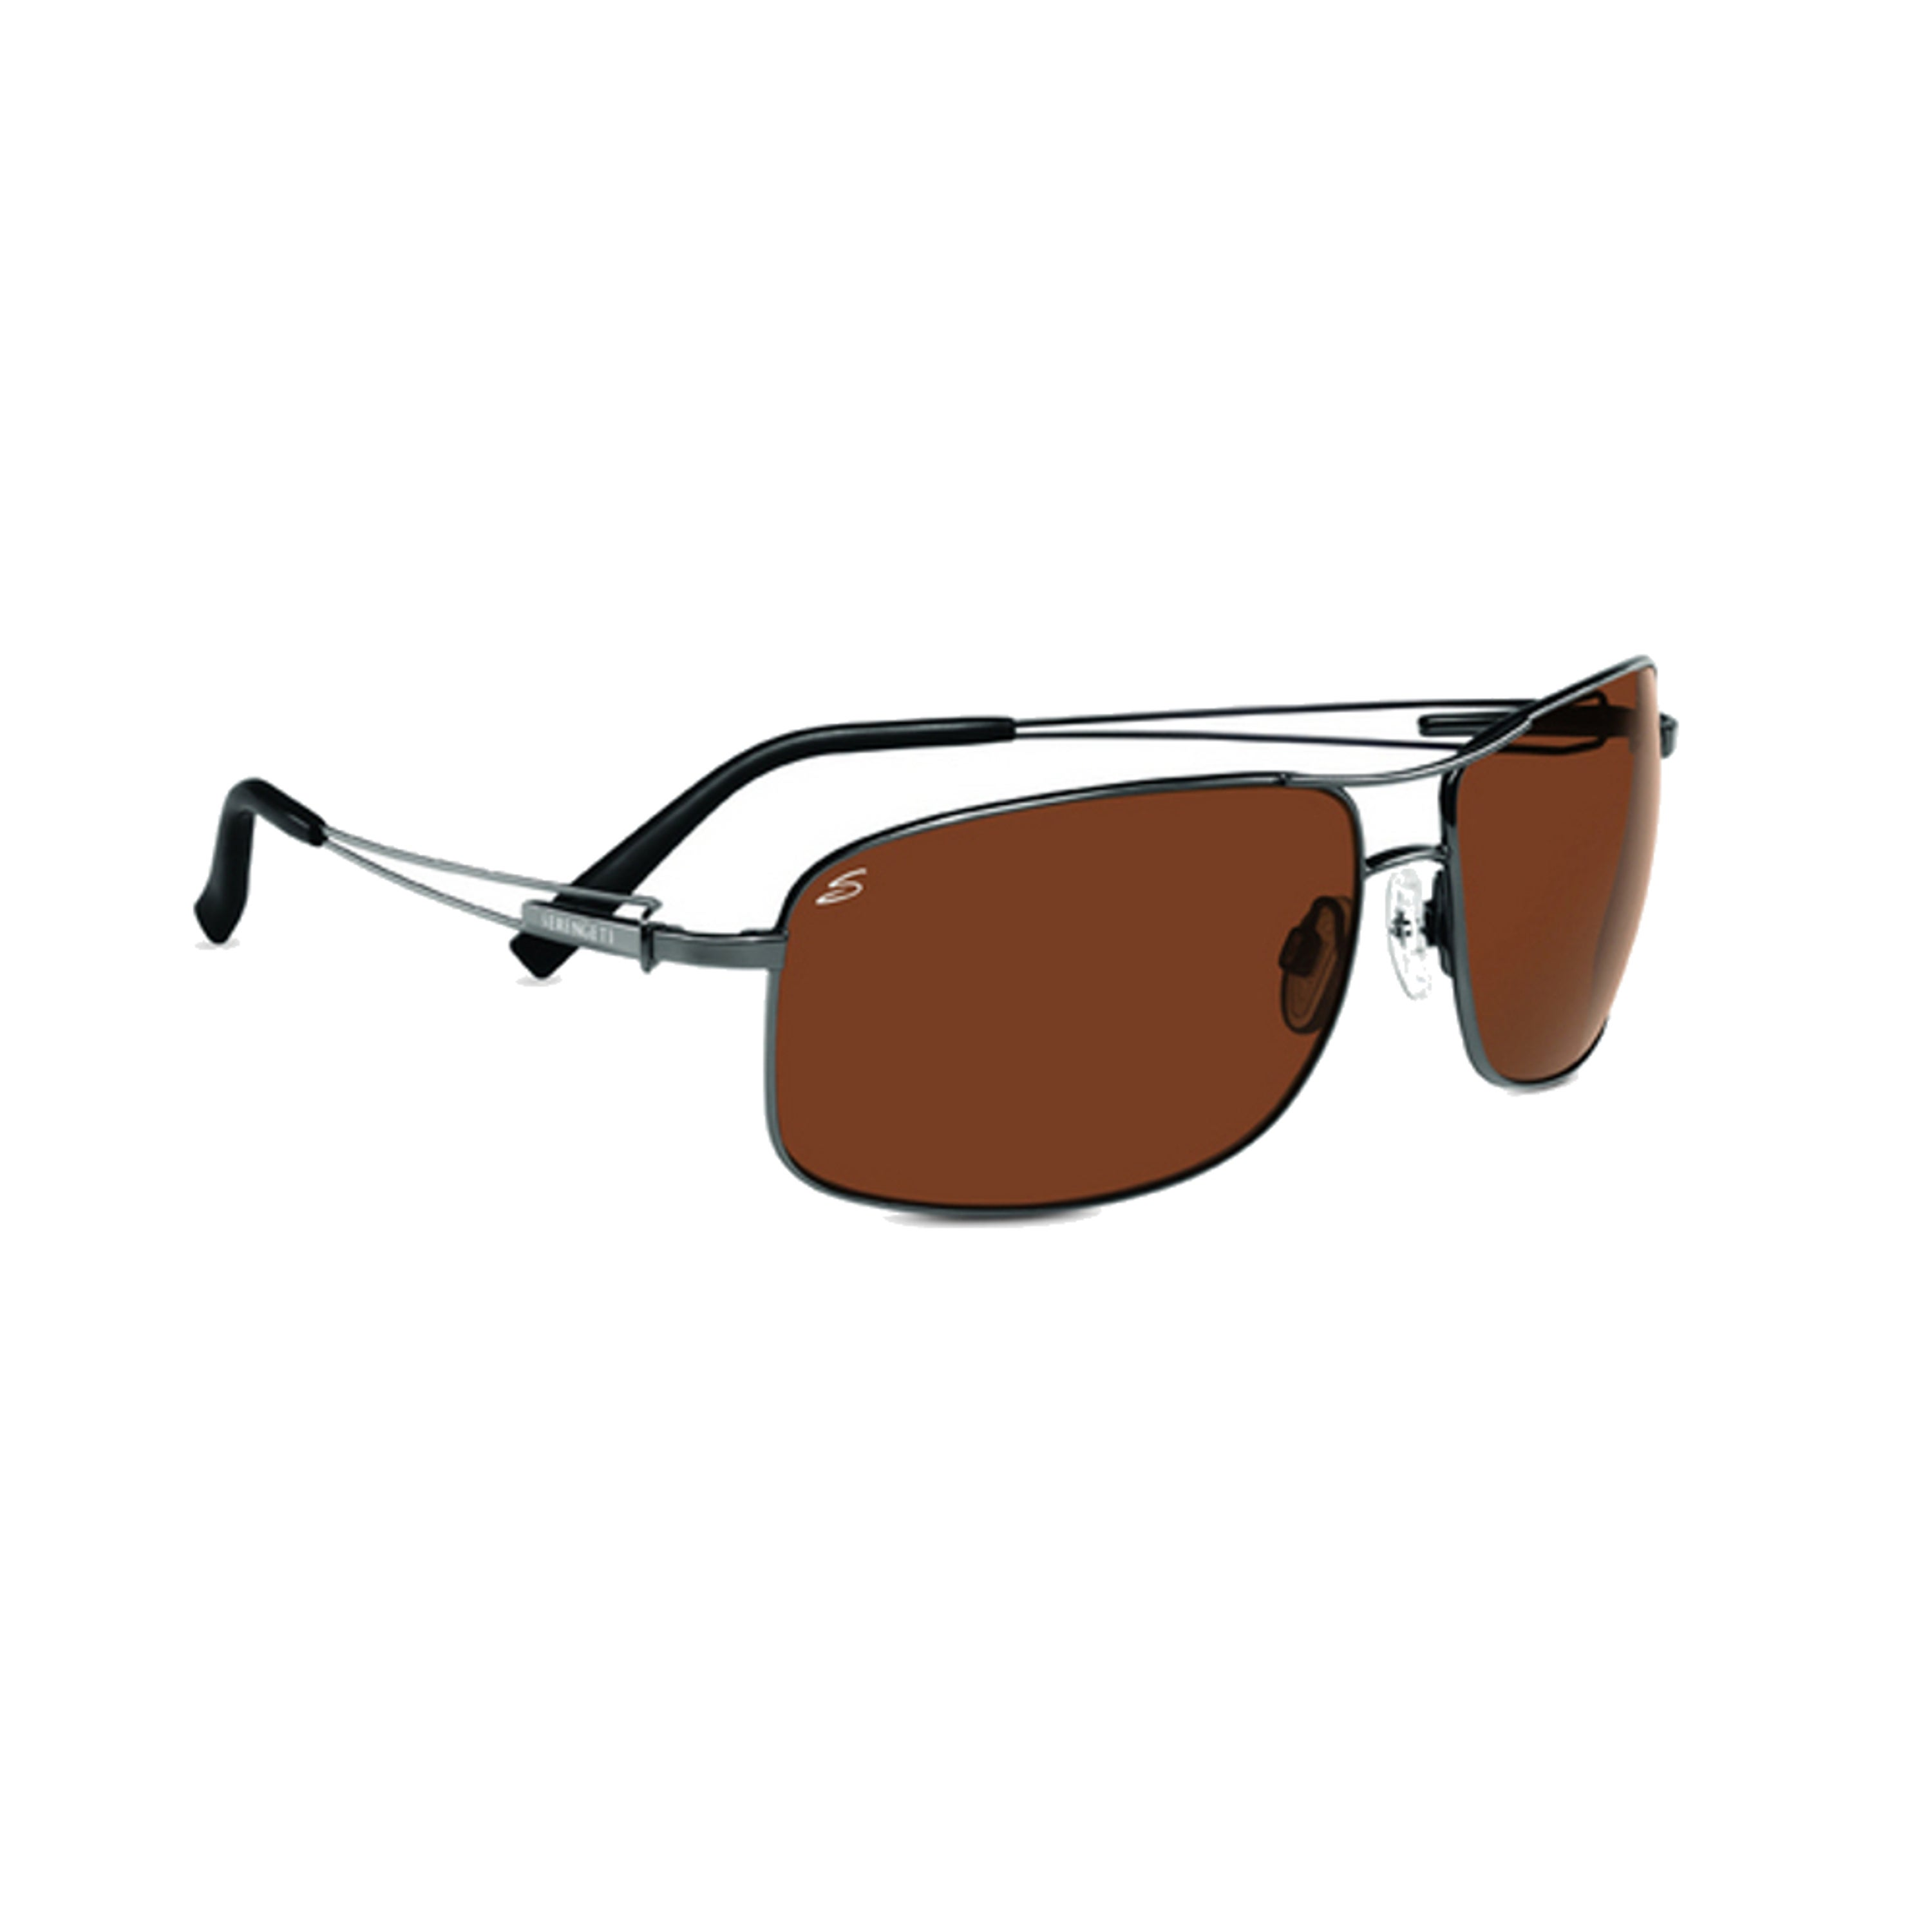 b427a205dc57 Shop Serengeti Sassari Unisex Shiny Gunmetal Frame with Polarized Drivers  Lens Sunglasses - Free Shipping Today - Overstock.com - 15372273